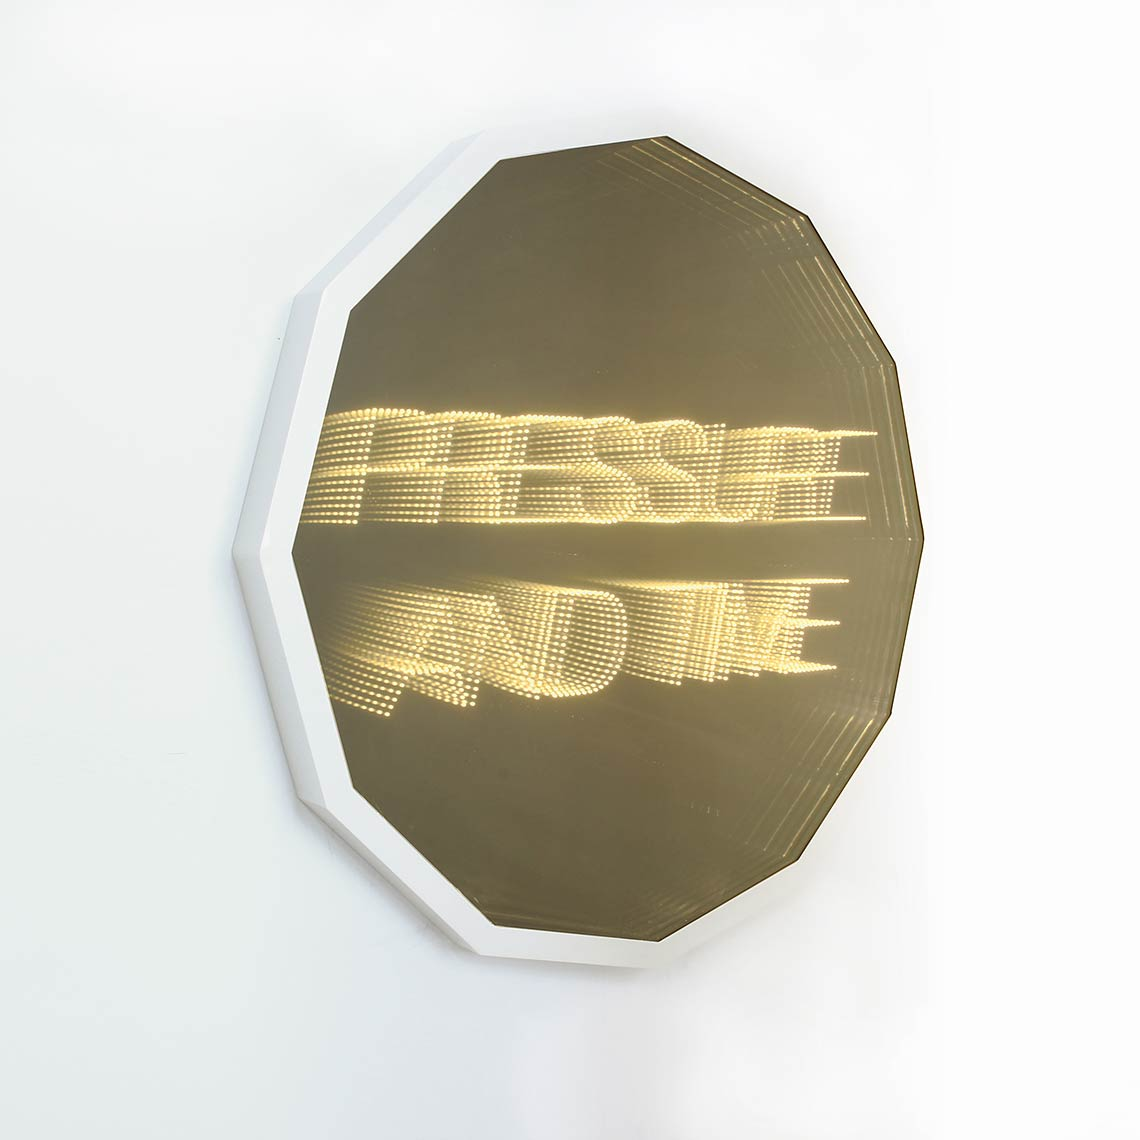 Pressure-And-Time_2014_glass-gold-mirror-tint-LEDs-plexiglassm-mirror-aluminum-frame_48-x-48-inches